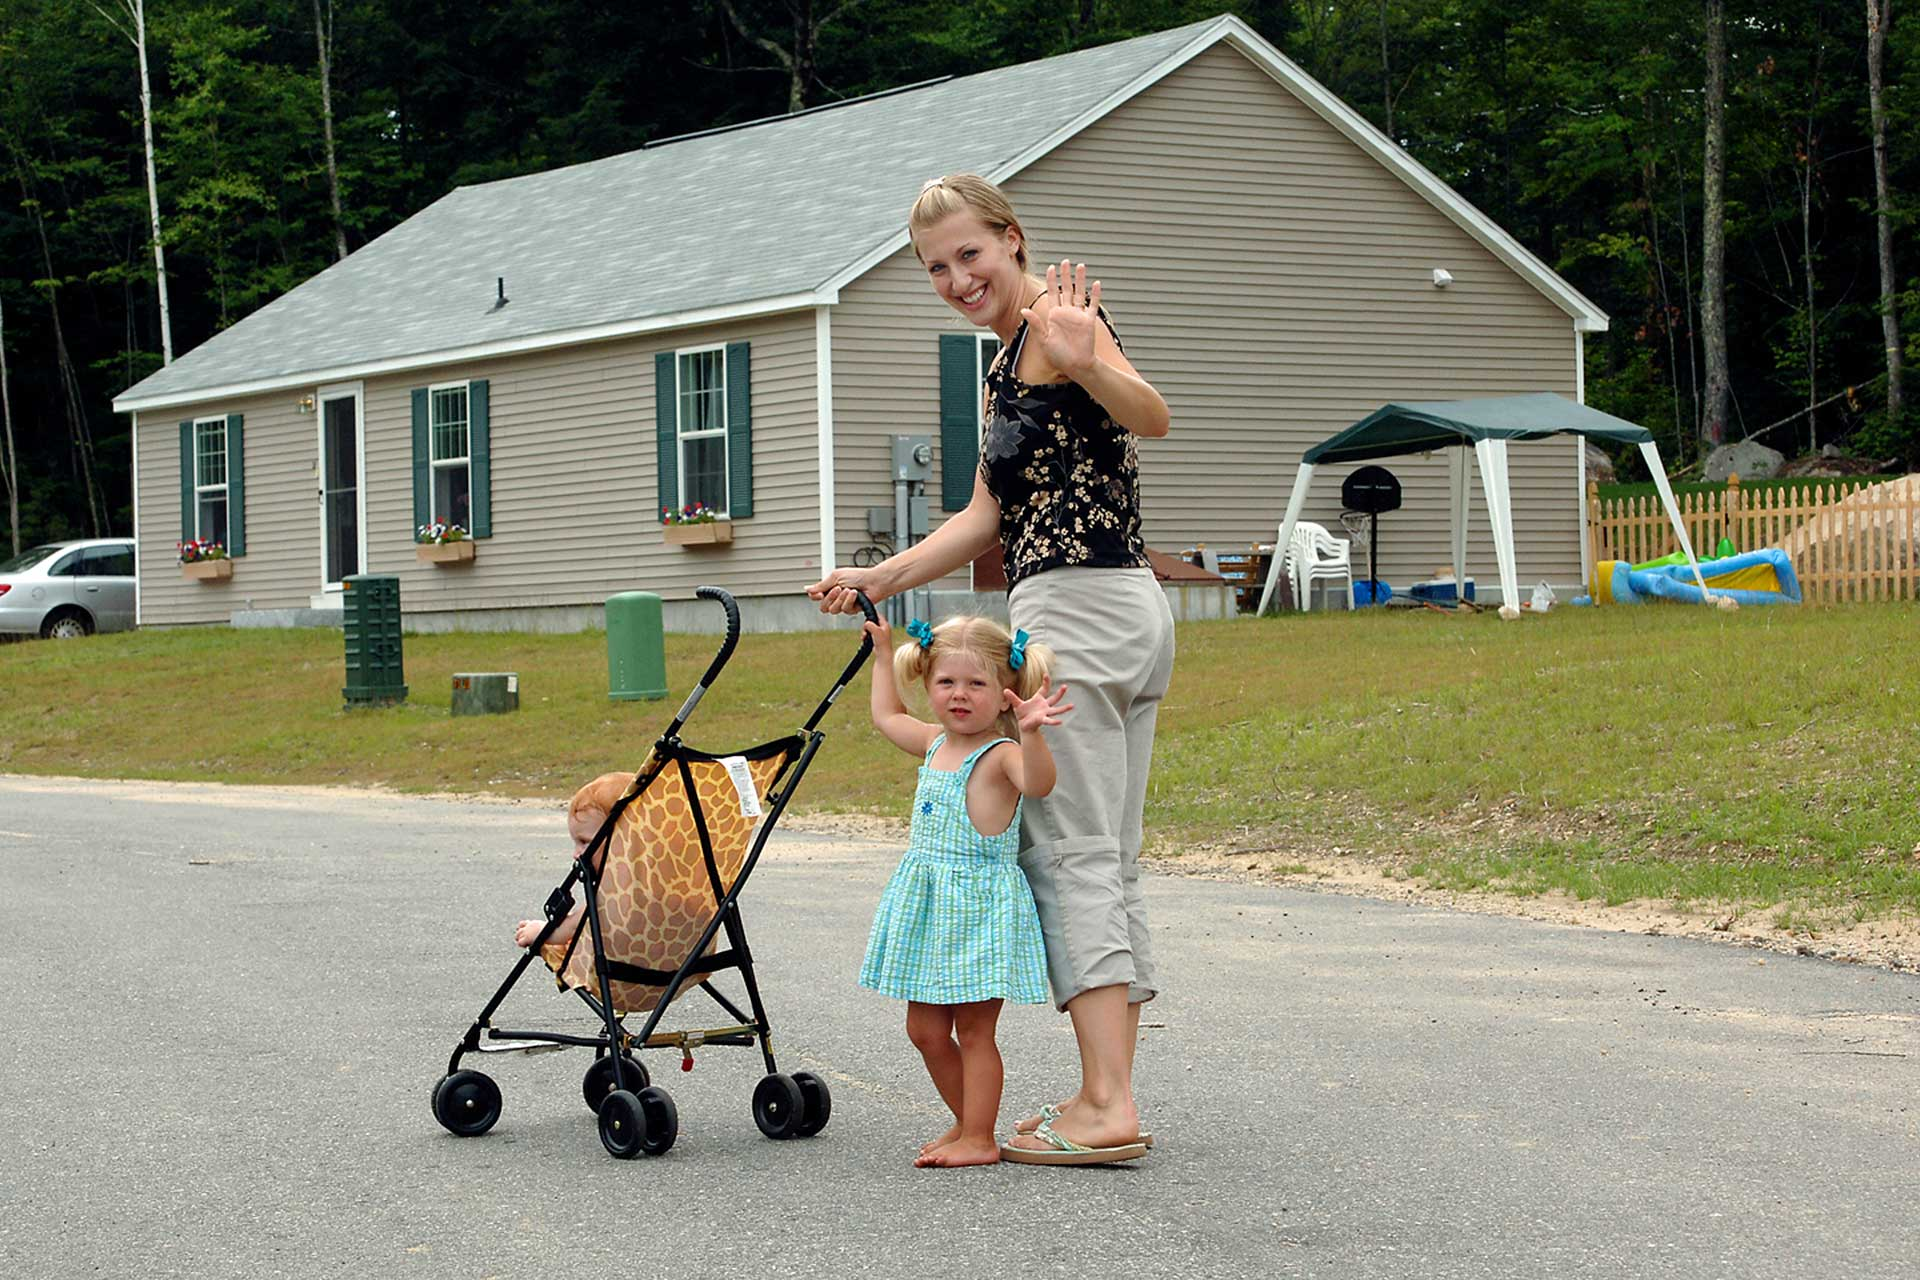 Mom and daughter turn to wave while pushing a stroller down the street